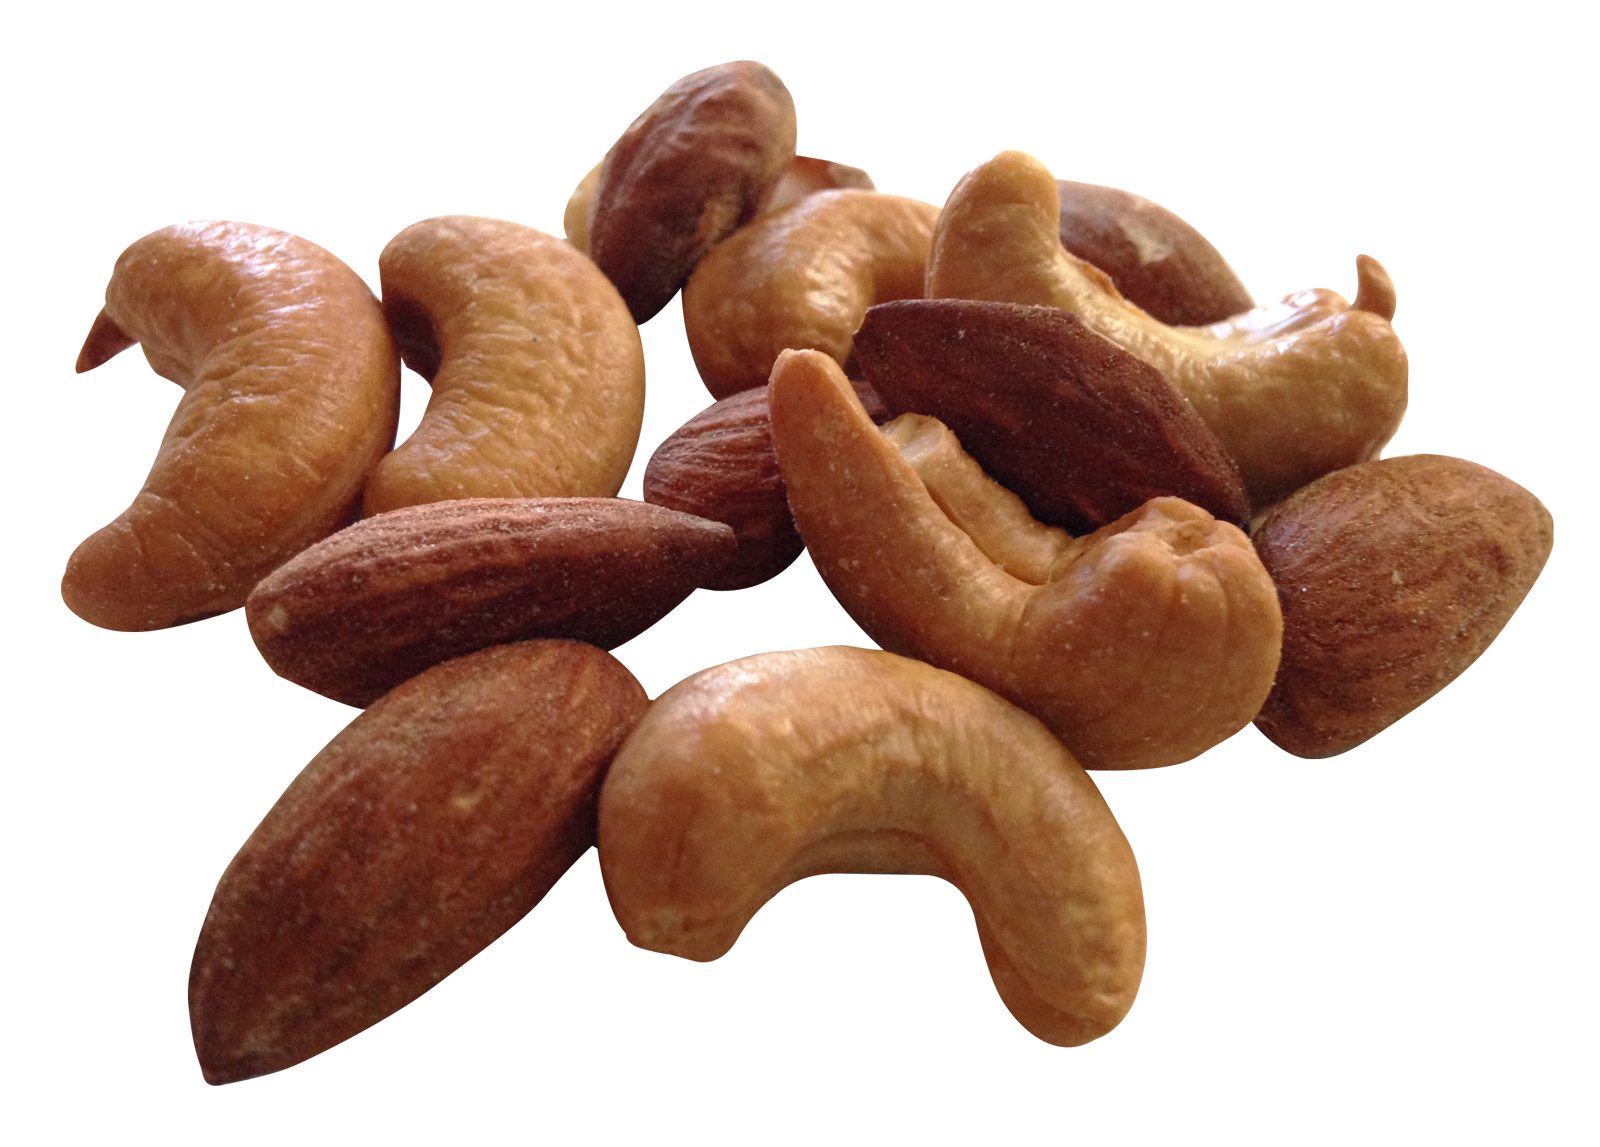 Nut clipart cashew nut. Png image purepng free